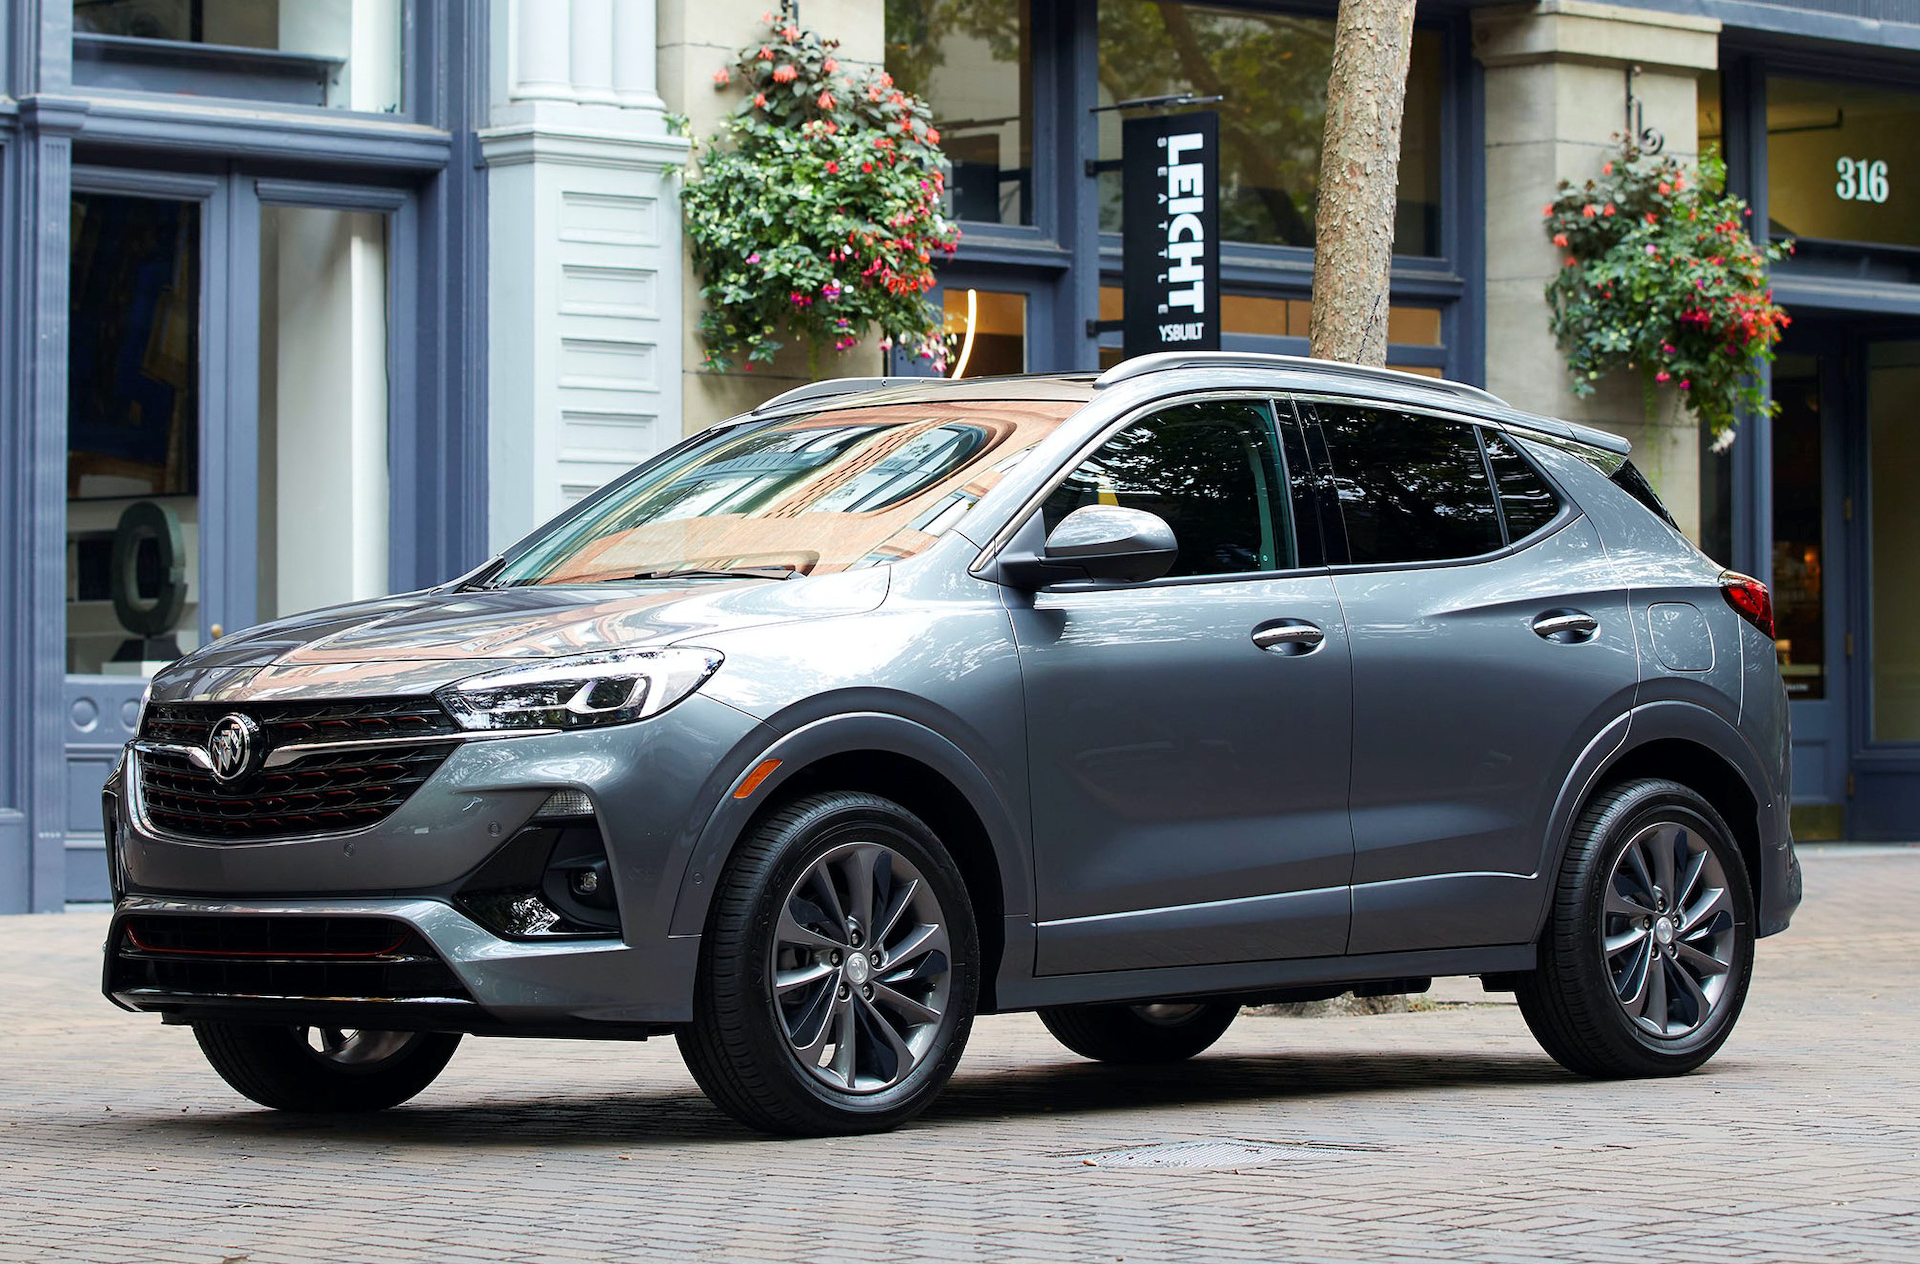 2021 Buick Encore Review, Ratings, Specs, Prices, And Photos New 2021 Buick Encore Gx Engine Specs, Features, Fwd